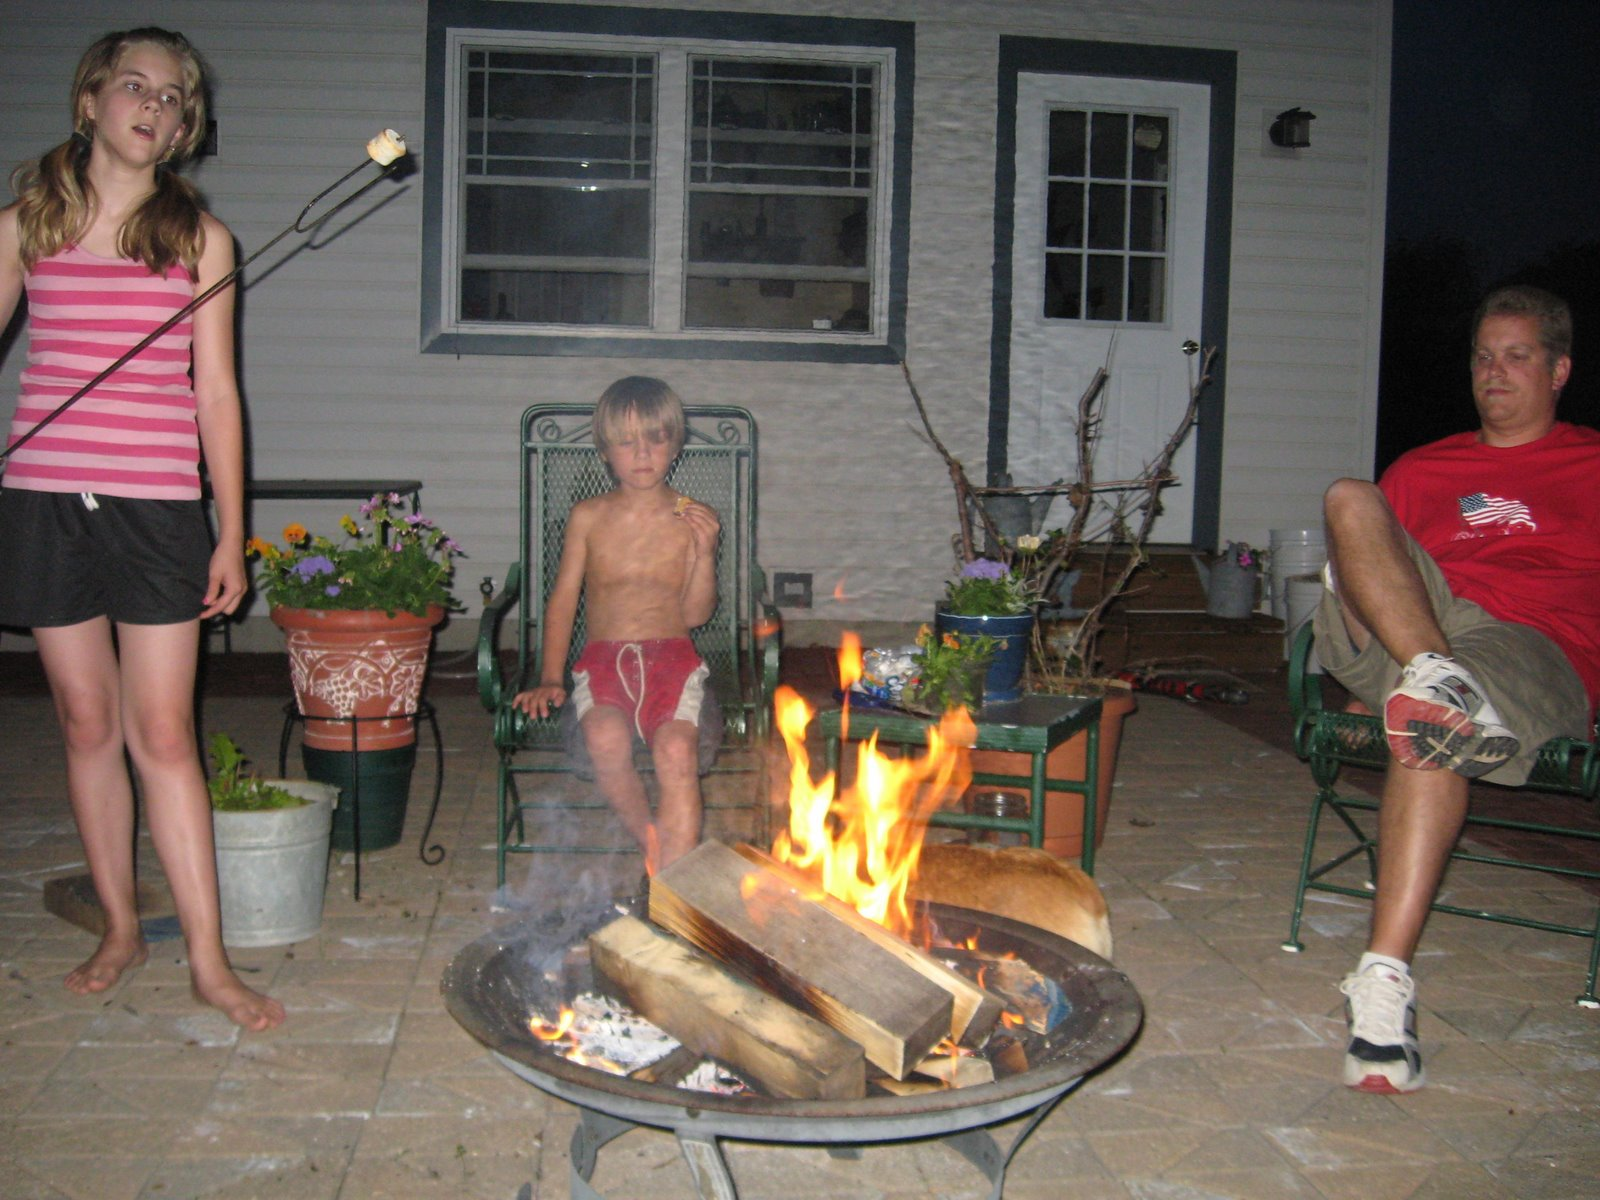 [family+around+fire+pit.jpg]